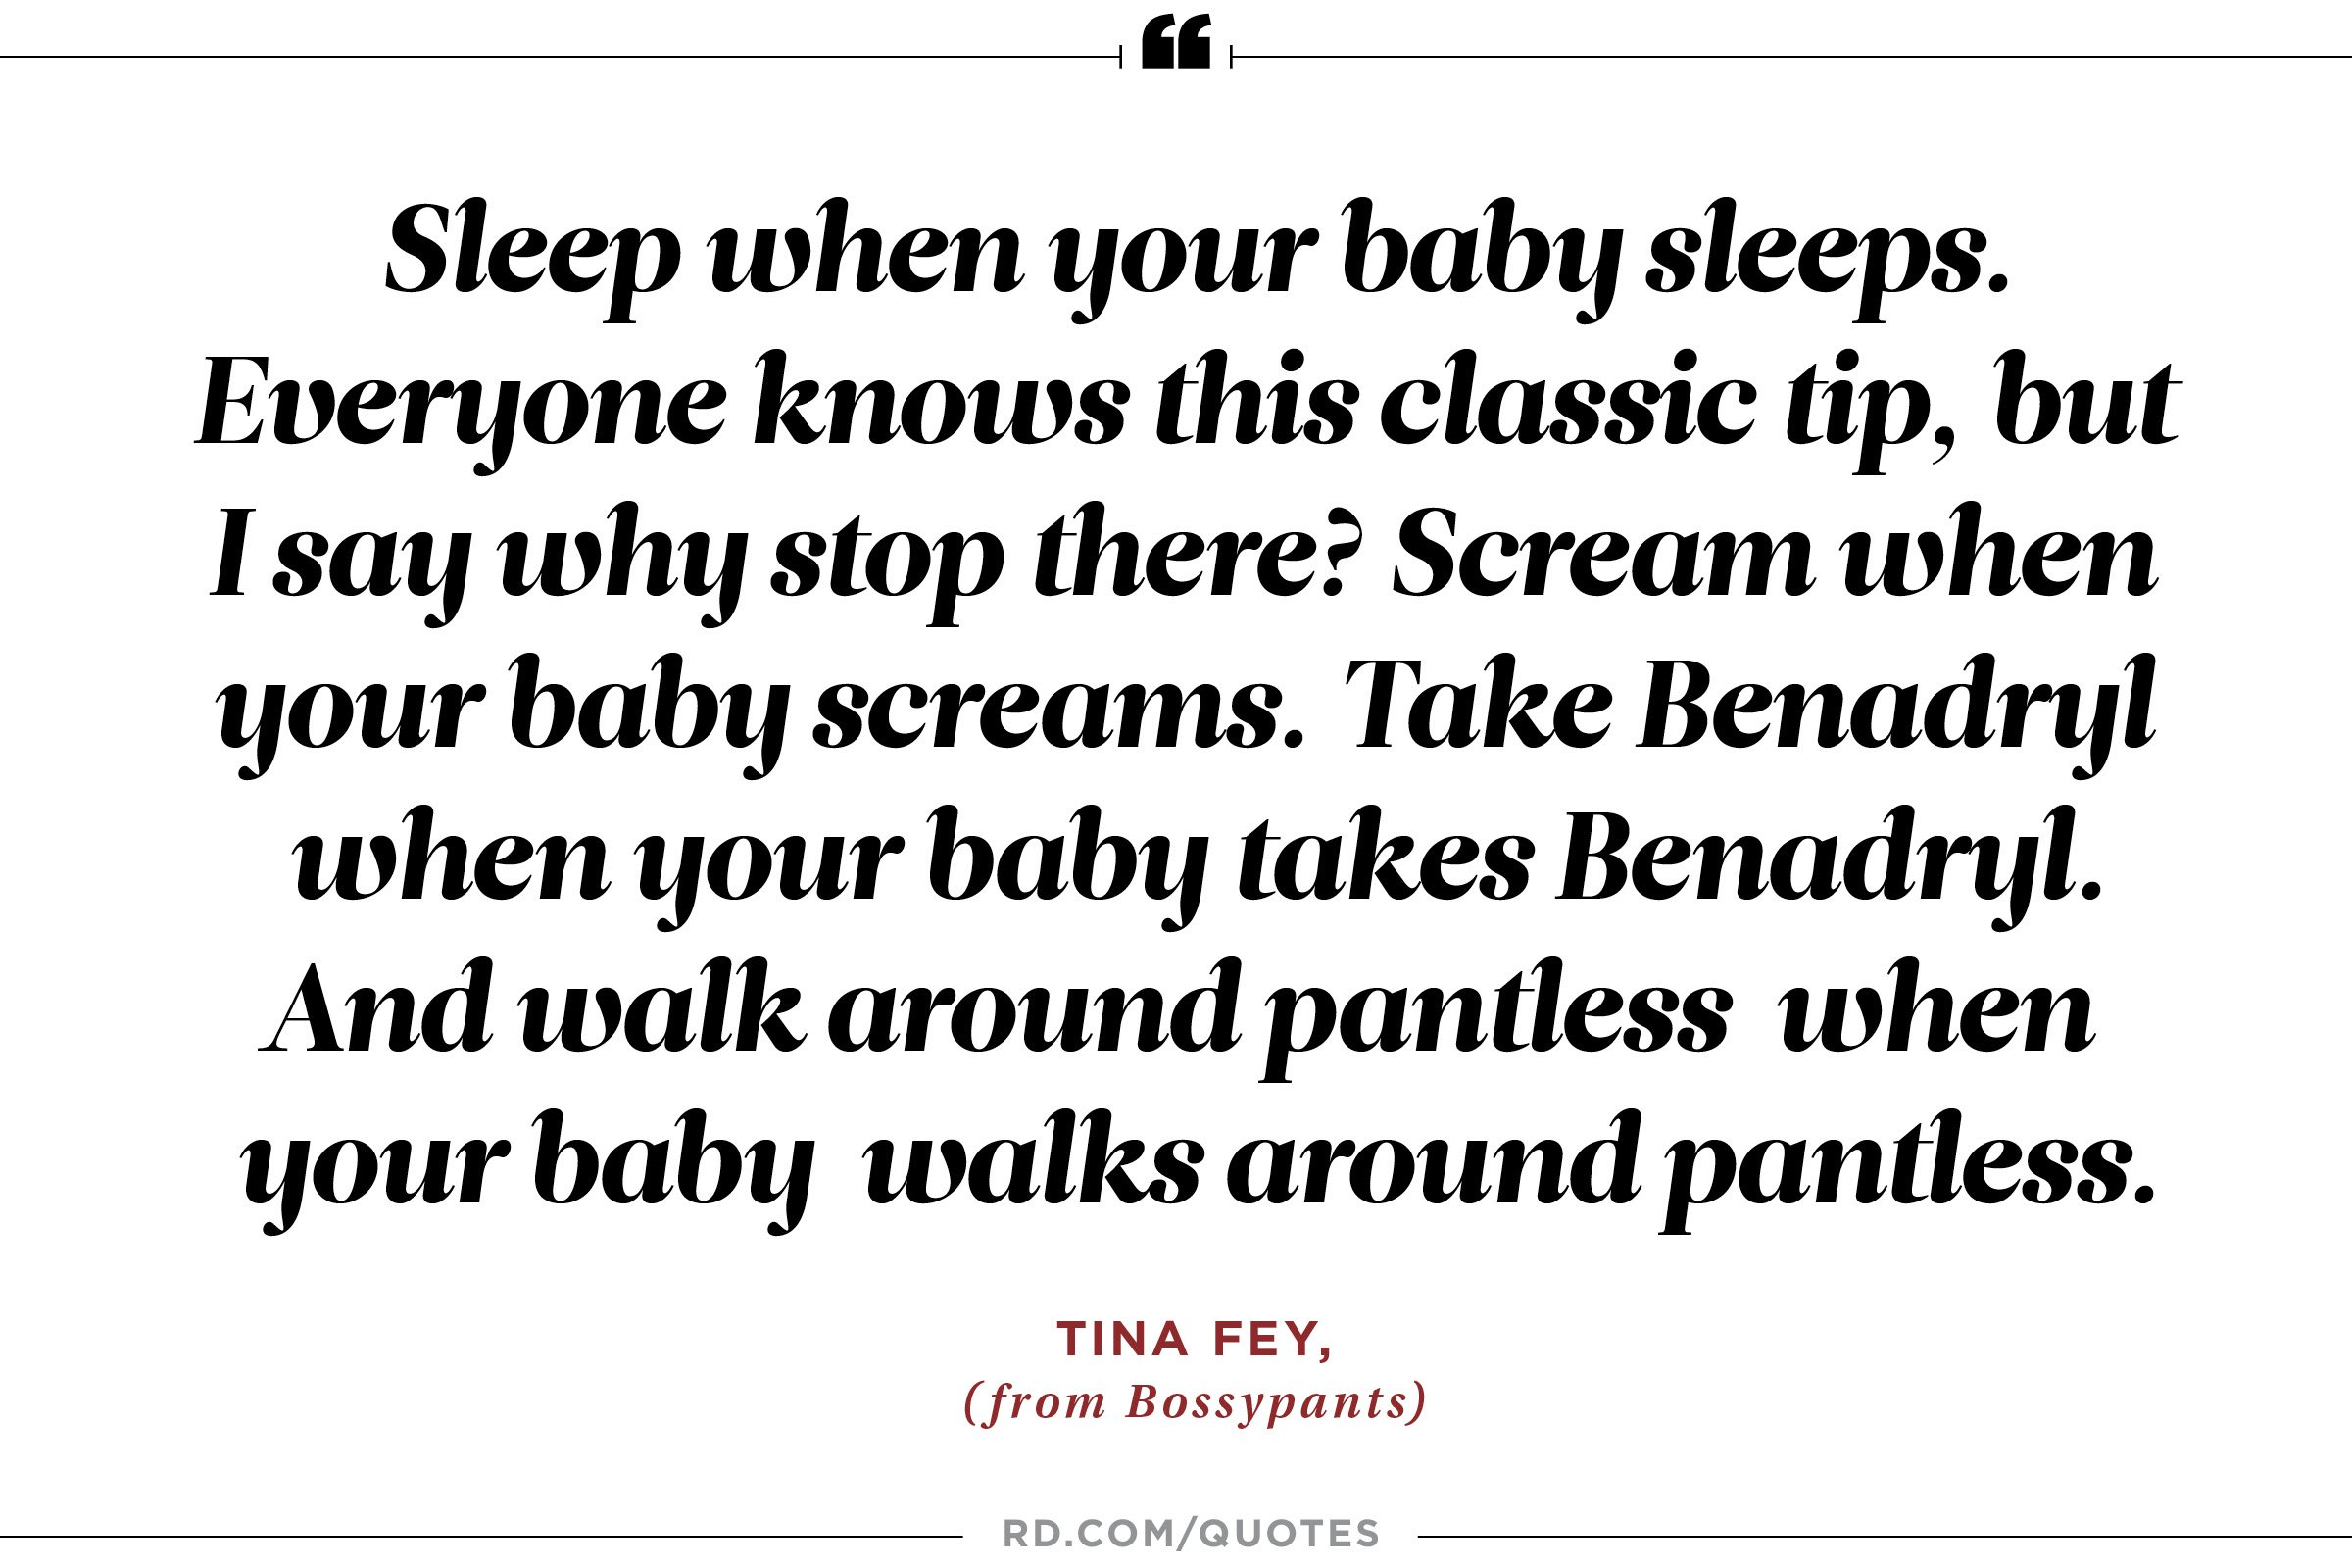 Sleep Quotes to Laugh at Over Your Morning Coffee | Reader's Digest #notEnoughCoffee